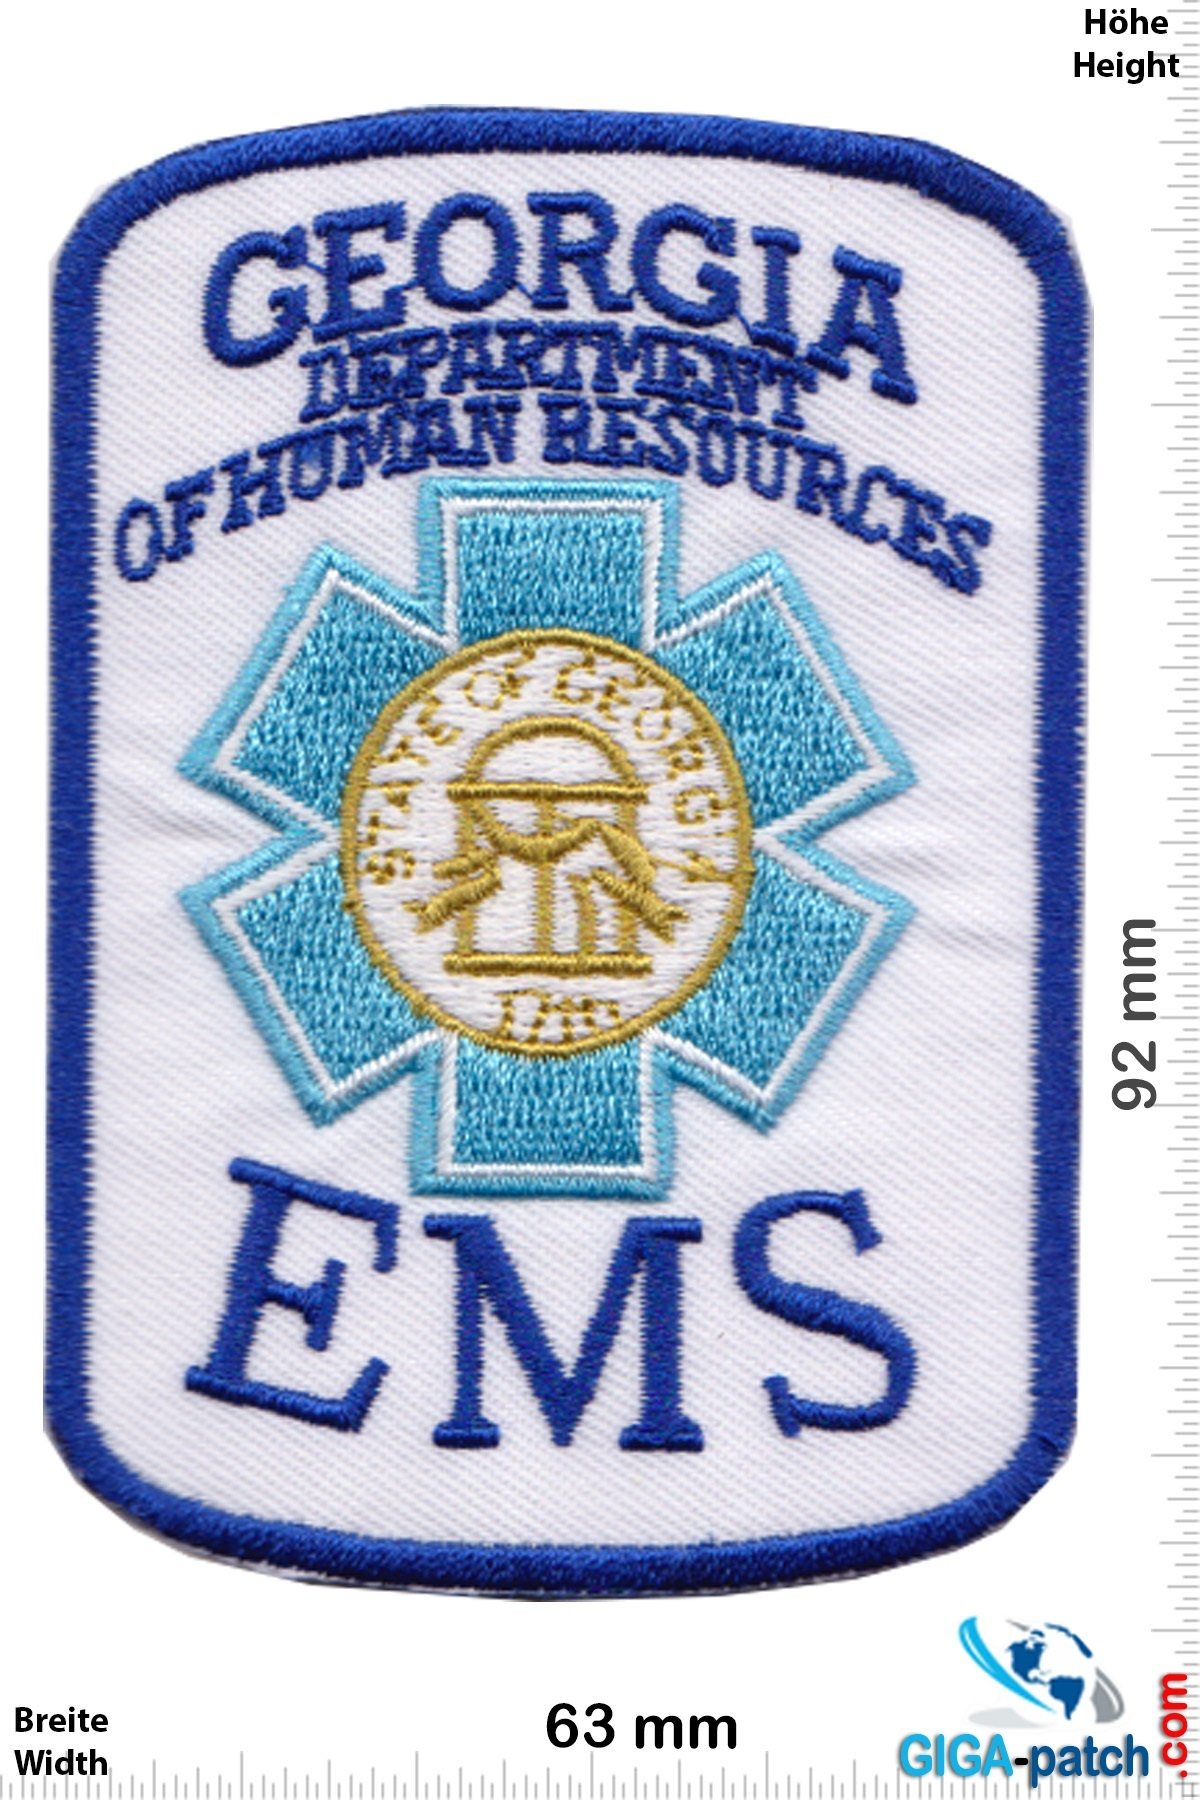 Emergency Georgia Department of Human Resources - EMS